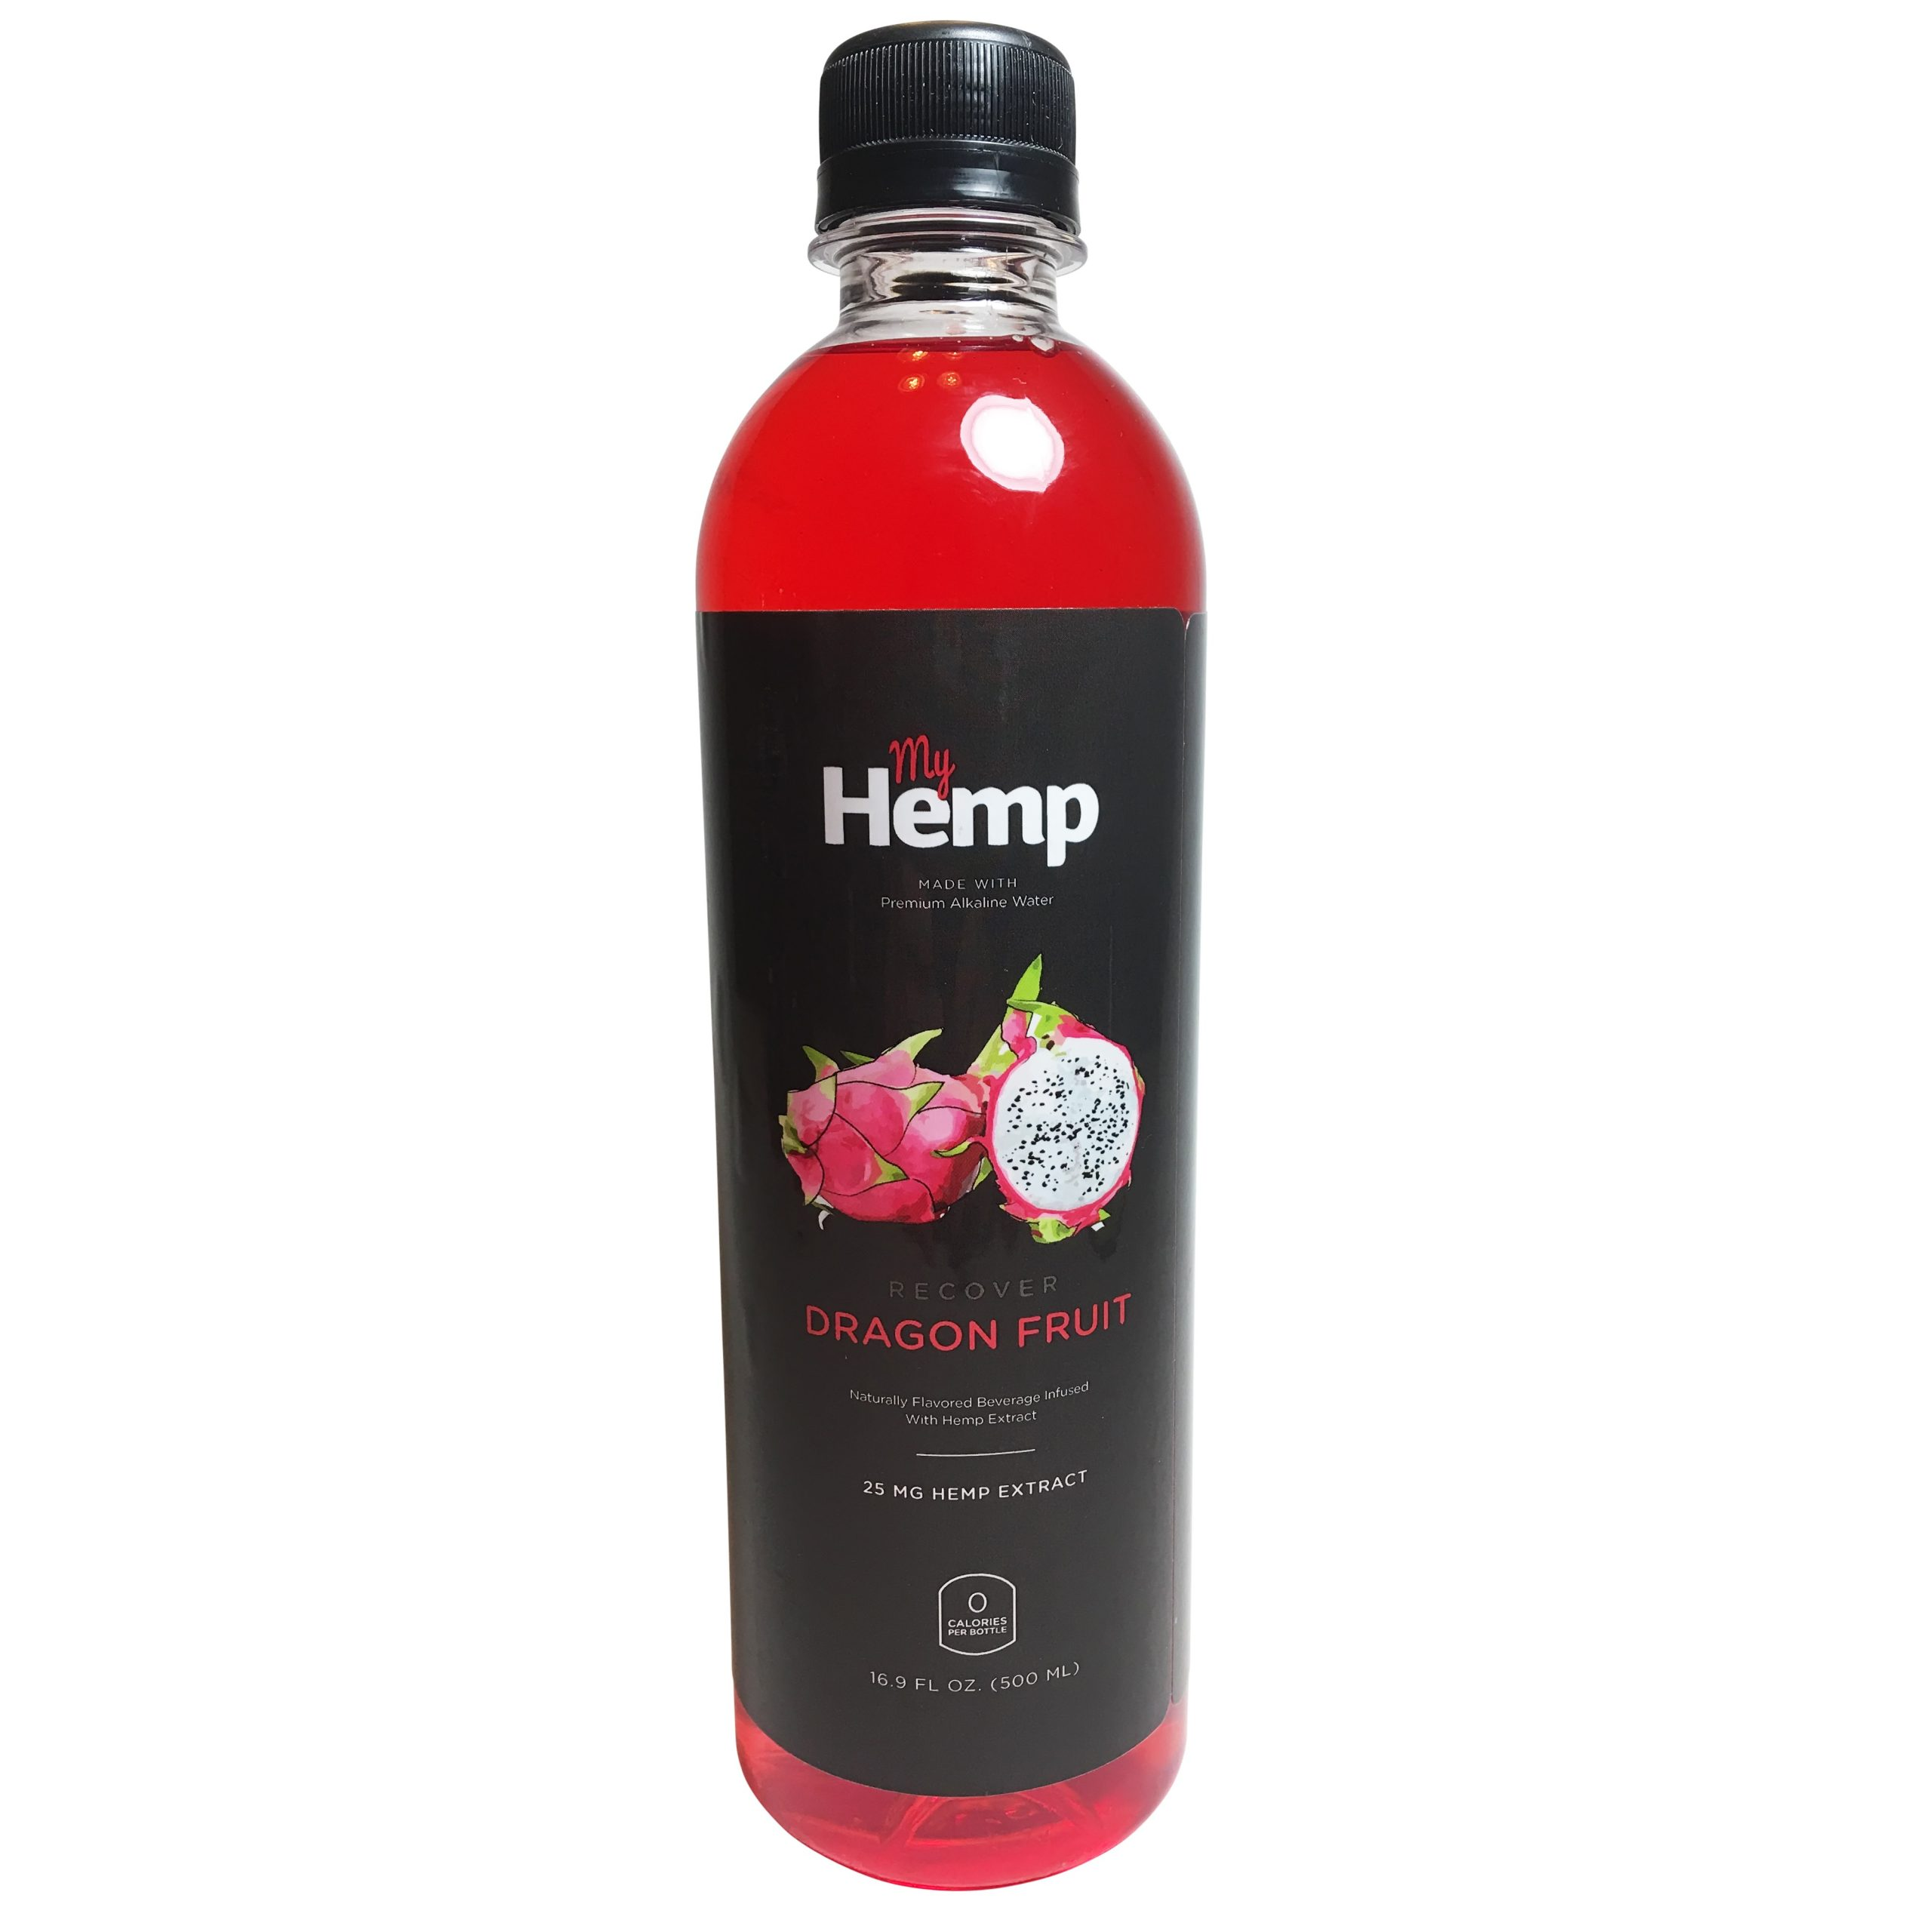 Dragon Fruit CBD-Infused Hemp Tea Drink Wholesale